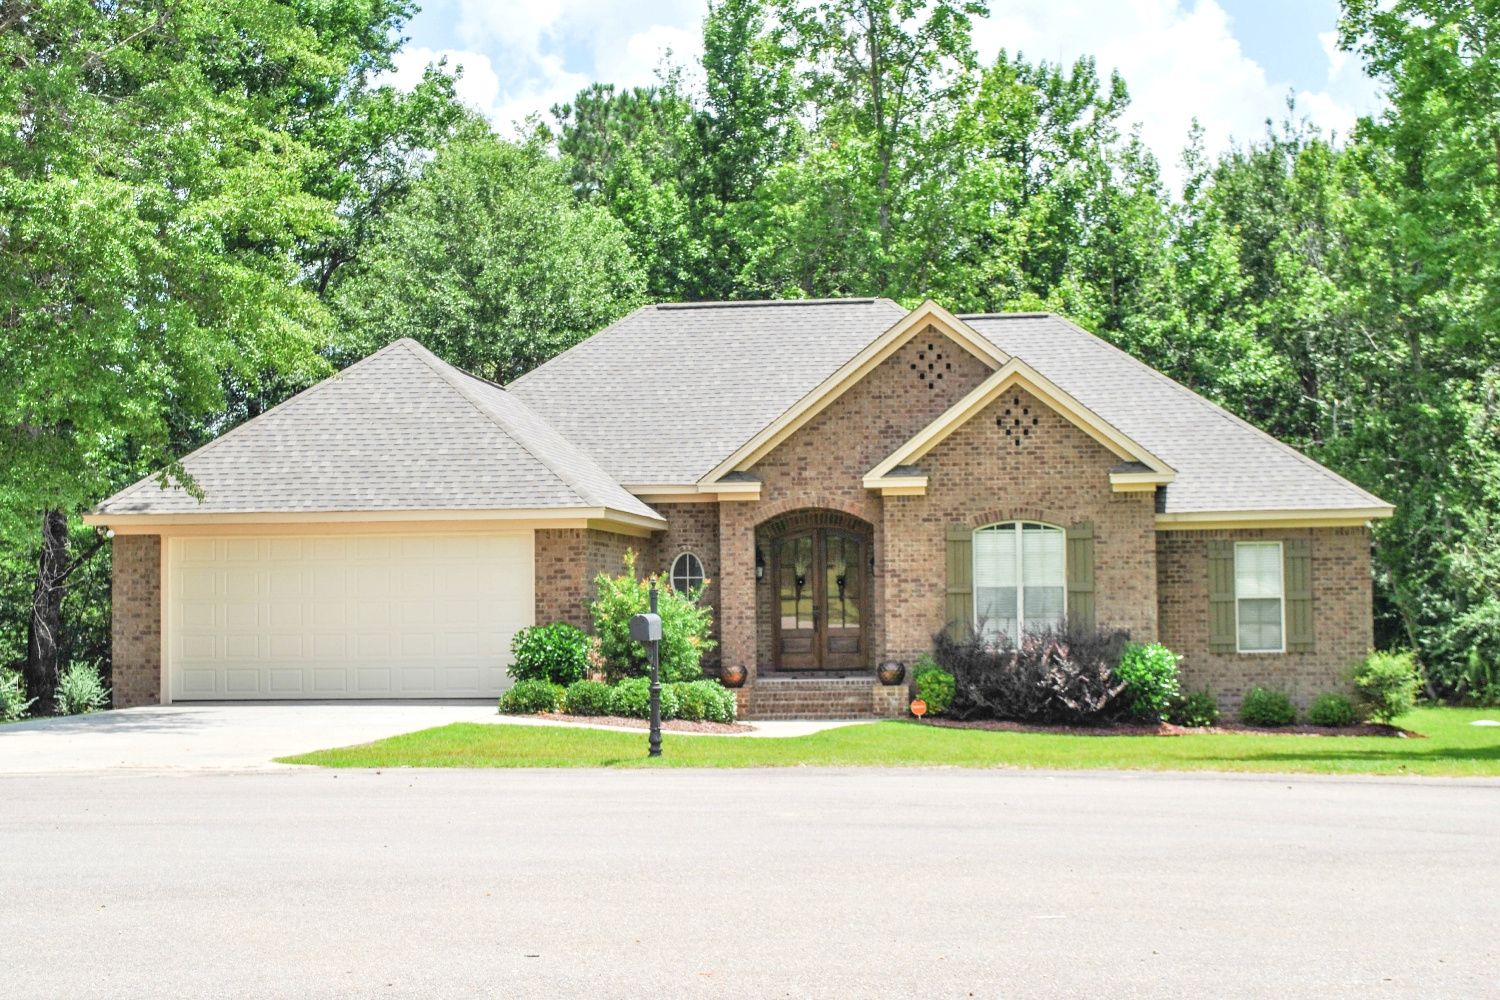 Great This House At Plan House Plan Sq Ft Home Plan Collection Duplex Plan Collection Reviews Front Elevation Photo houzz 01 The Plan Collection